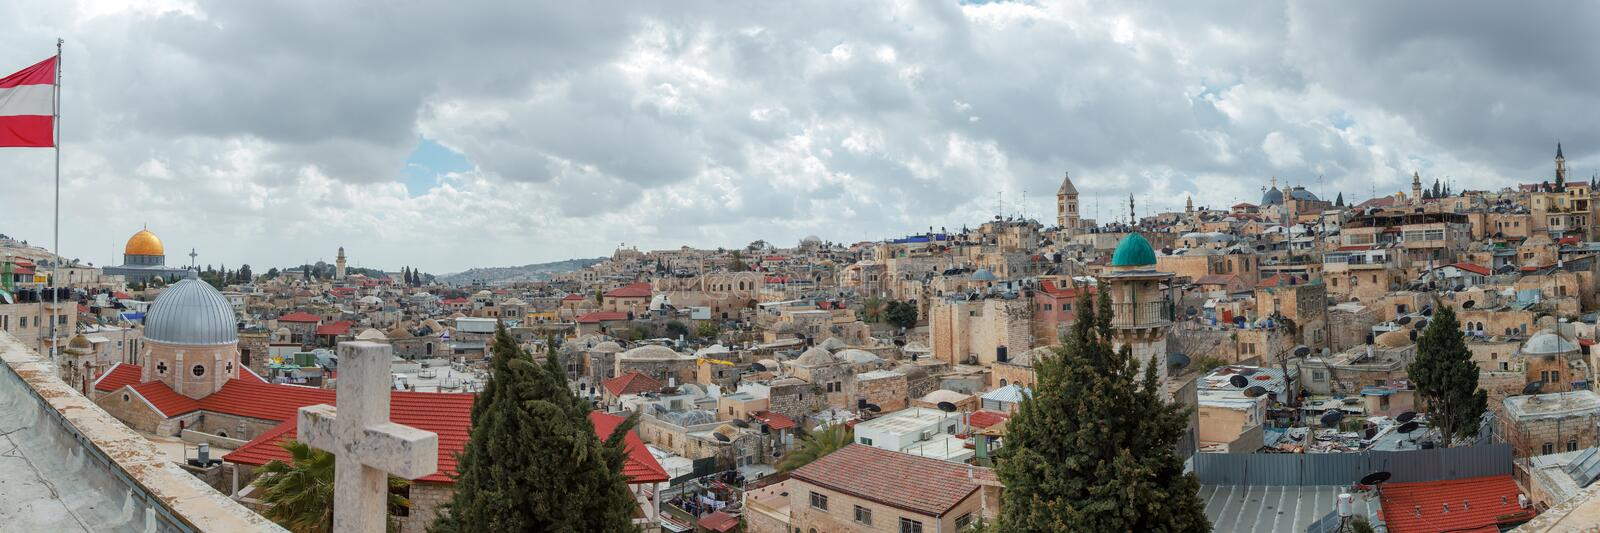 Panorama - Roofs of Old City, Jerusalem stock photo